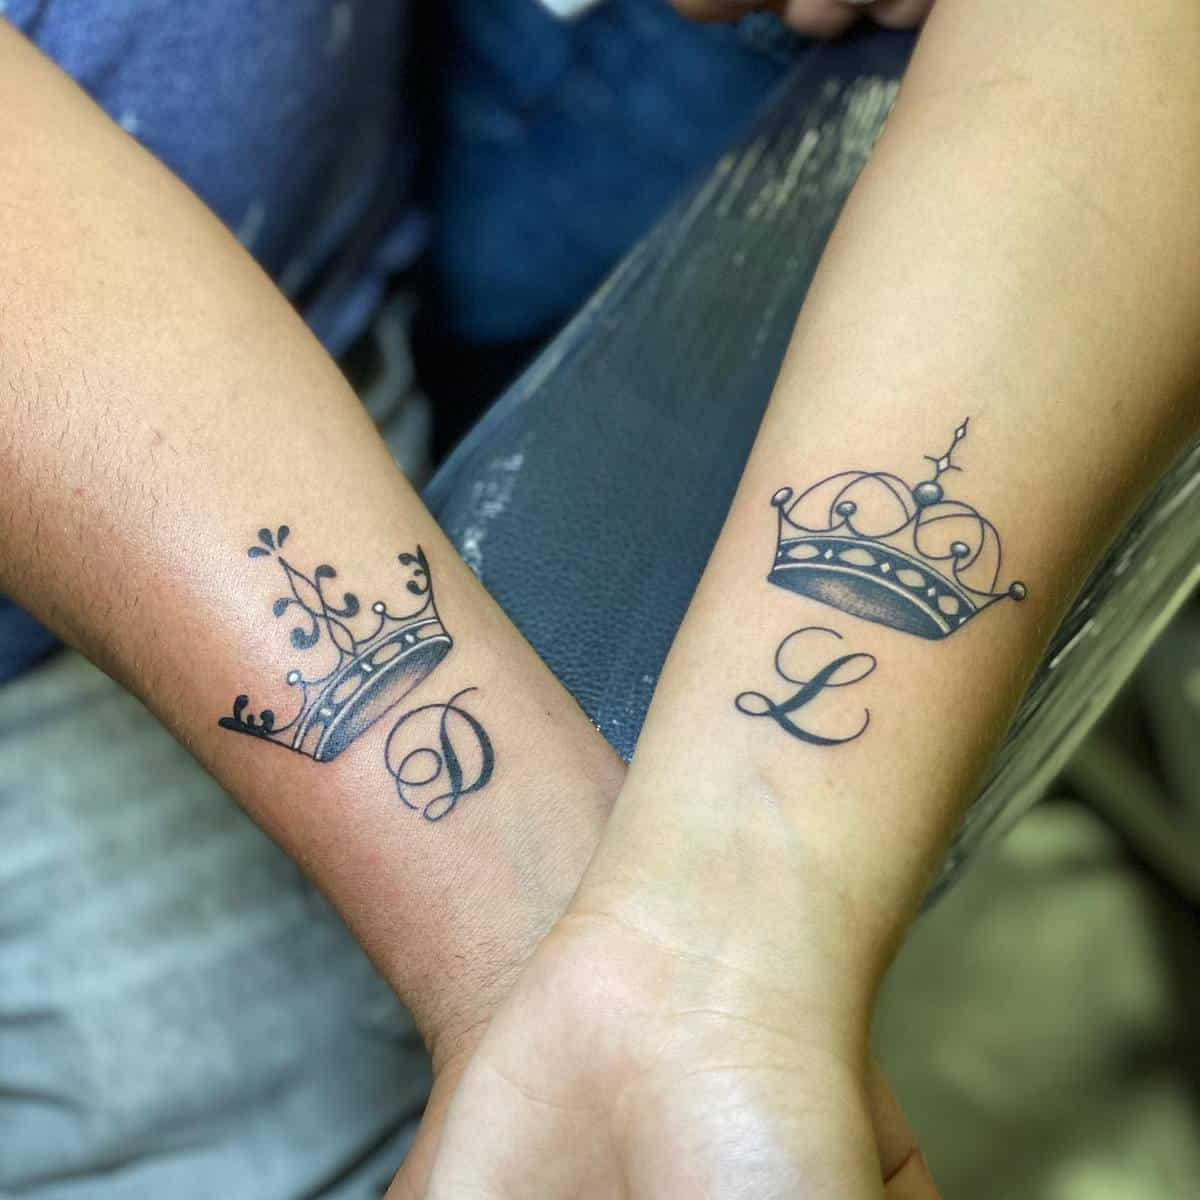 Crown Matching Tattoos richtatts_official